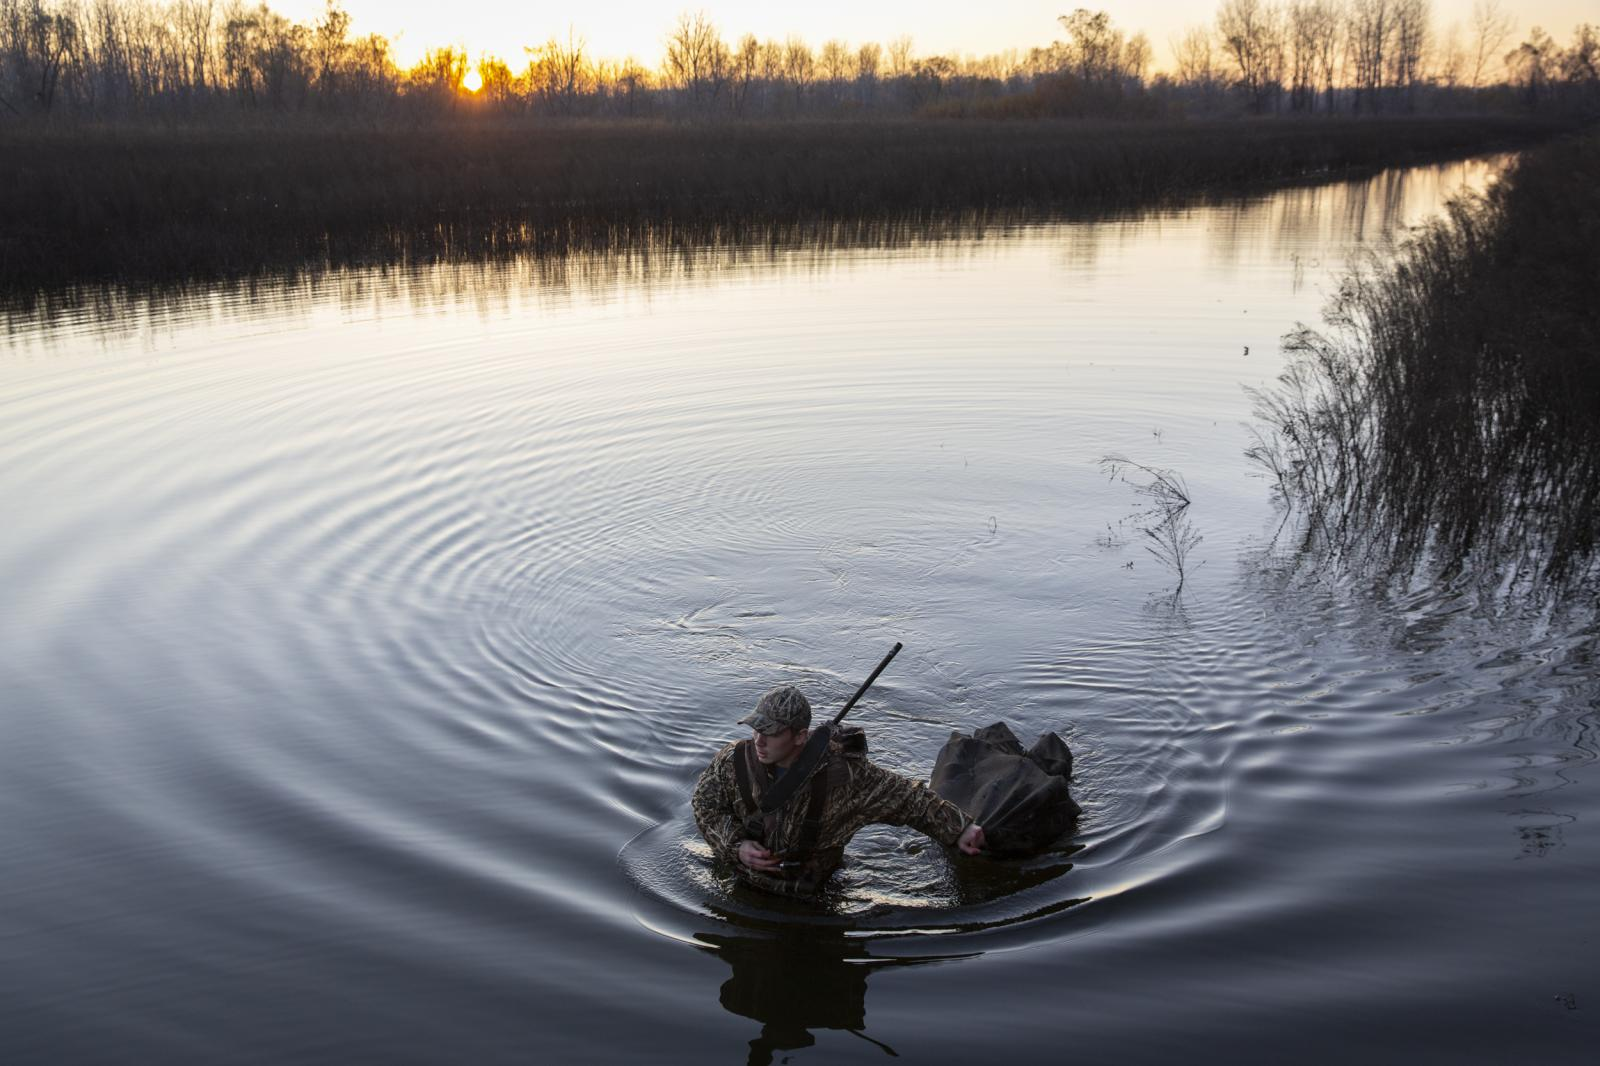 Luke Miener spends his Thursday afternoon duck hunting at Diana Bend Conservation Area near Columbia, Mo. on Nov. 15, 2018. An avid hunter of 12 years, Miener said it was his first time trying out the spot. He finished the day empty-handed.